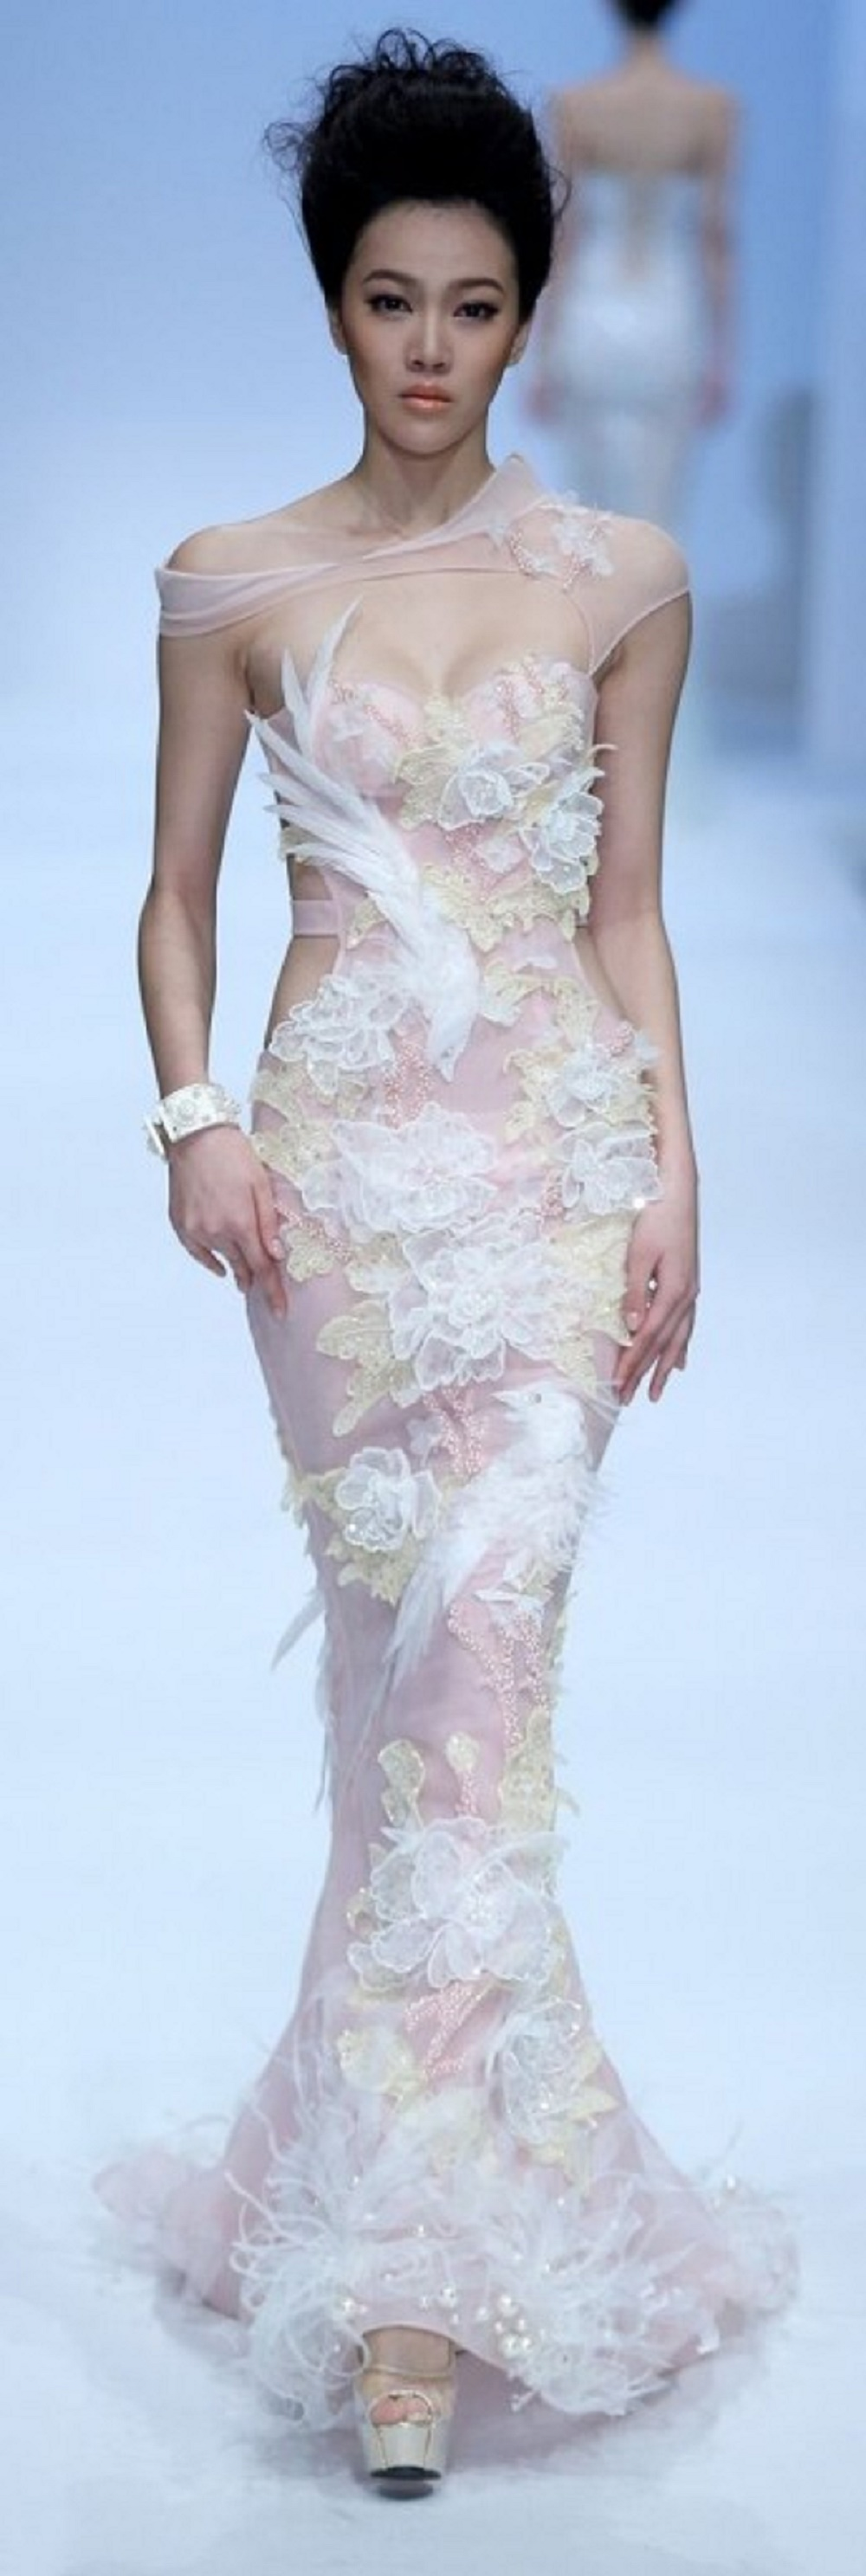 Elie saab unbridled pinterest gowns couture and wedding dress